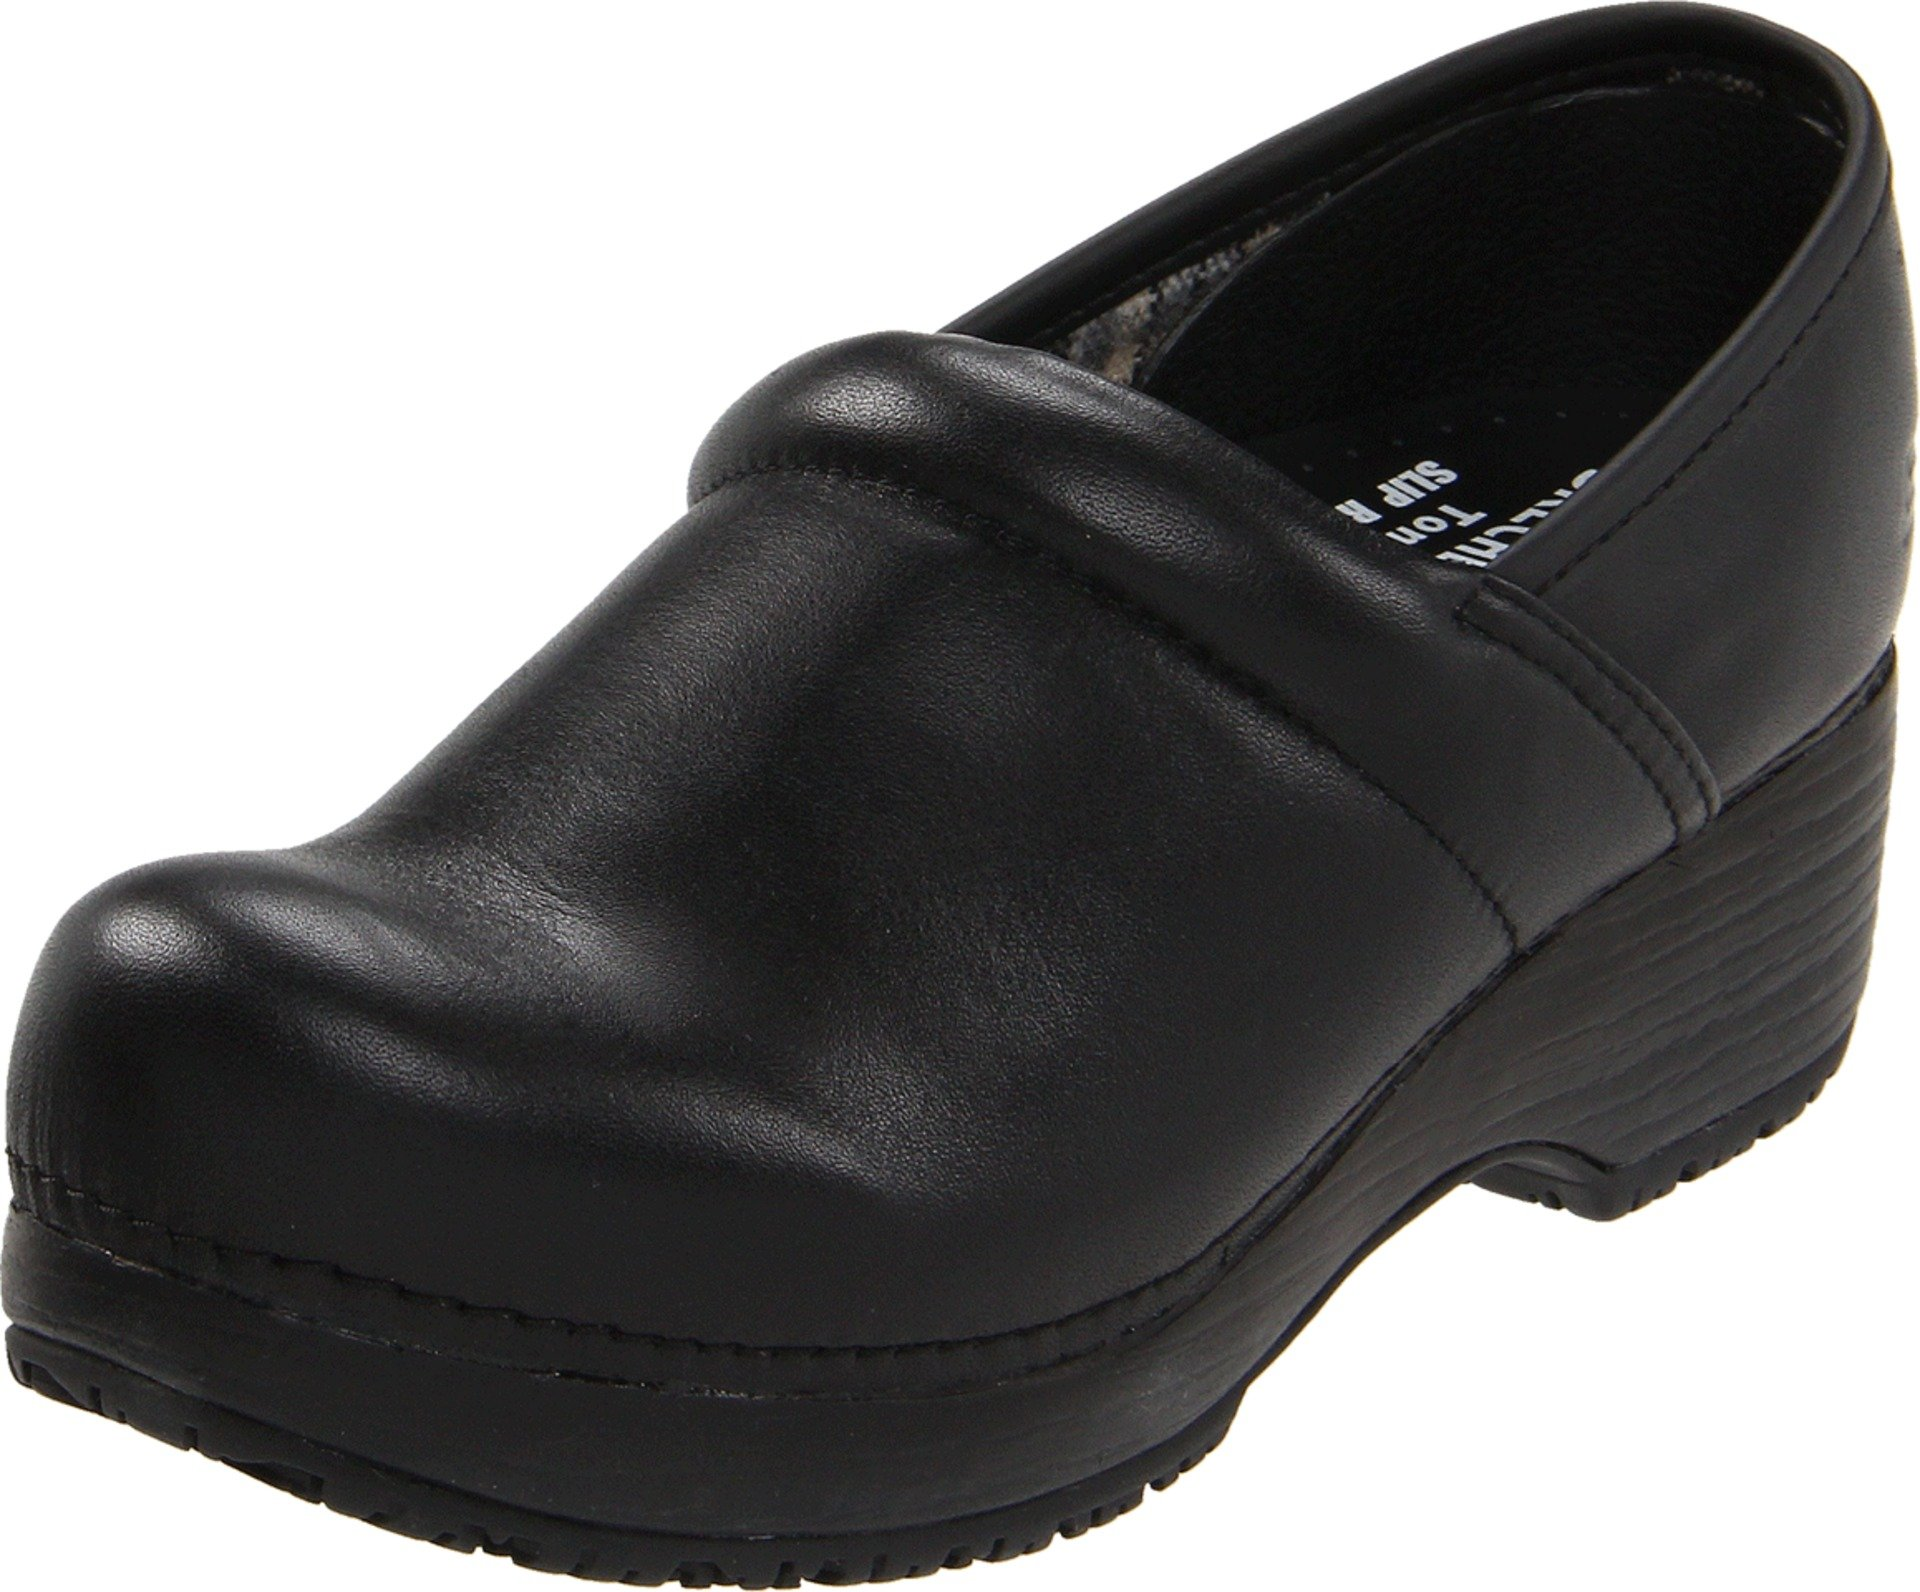 Skechers for Work Women's Clog, Black, 7.5 M US